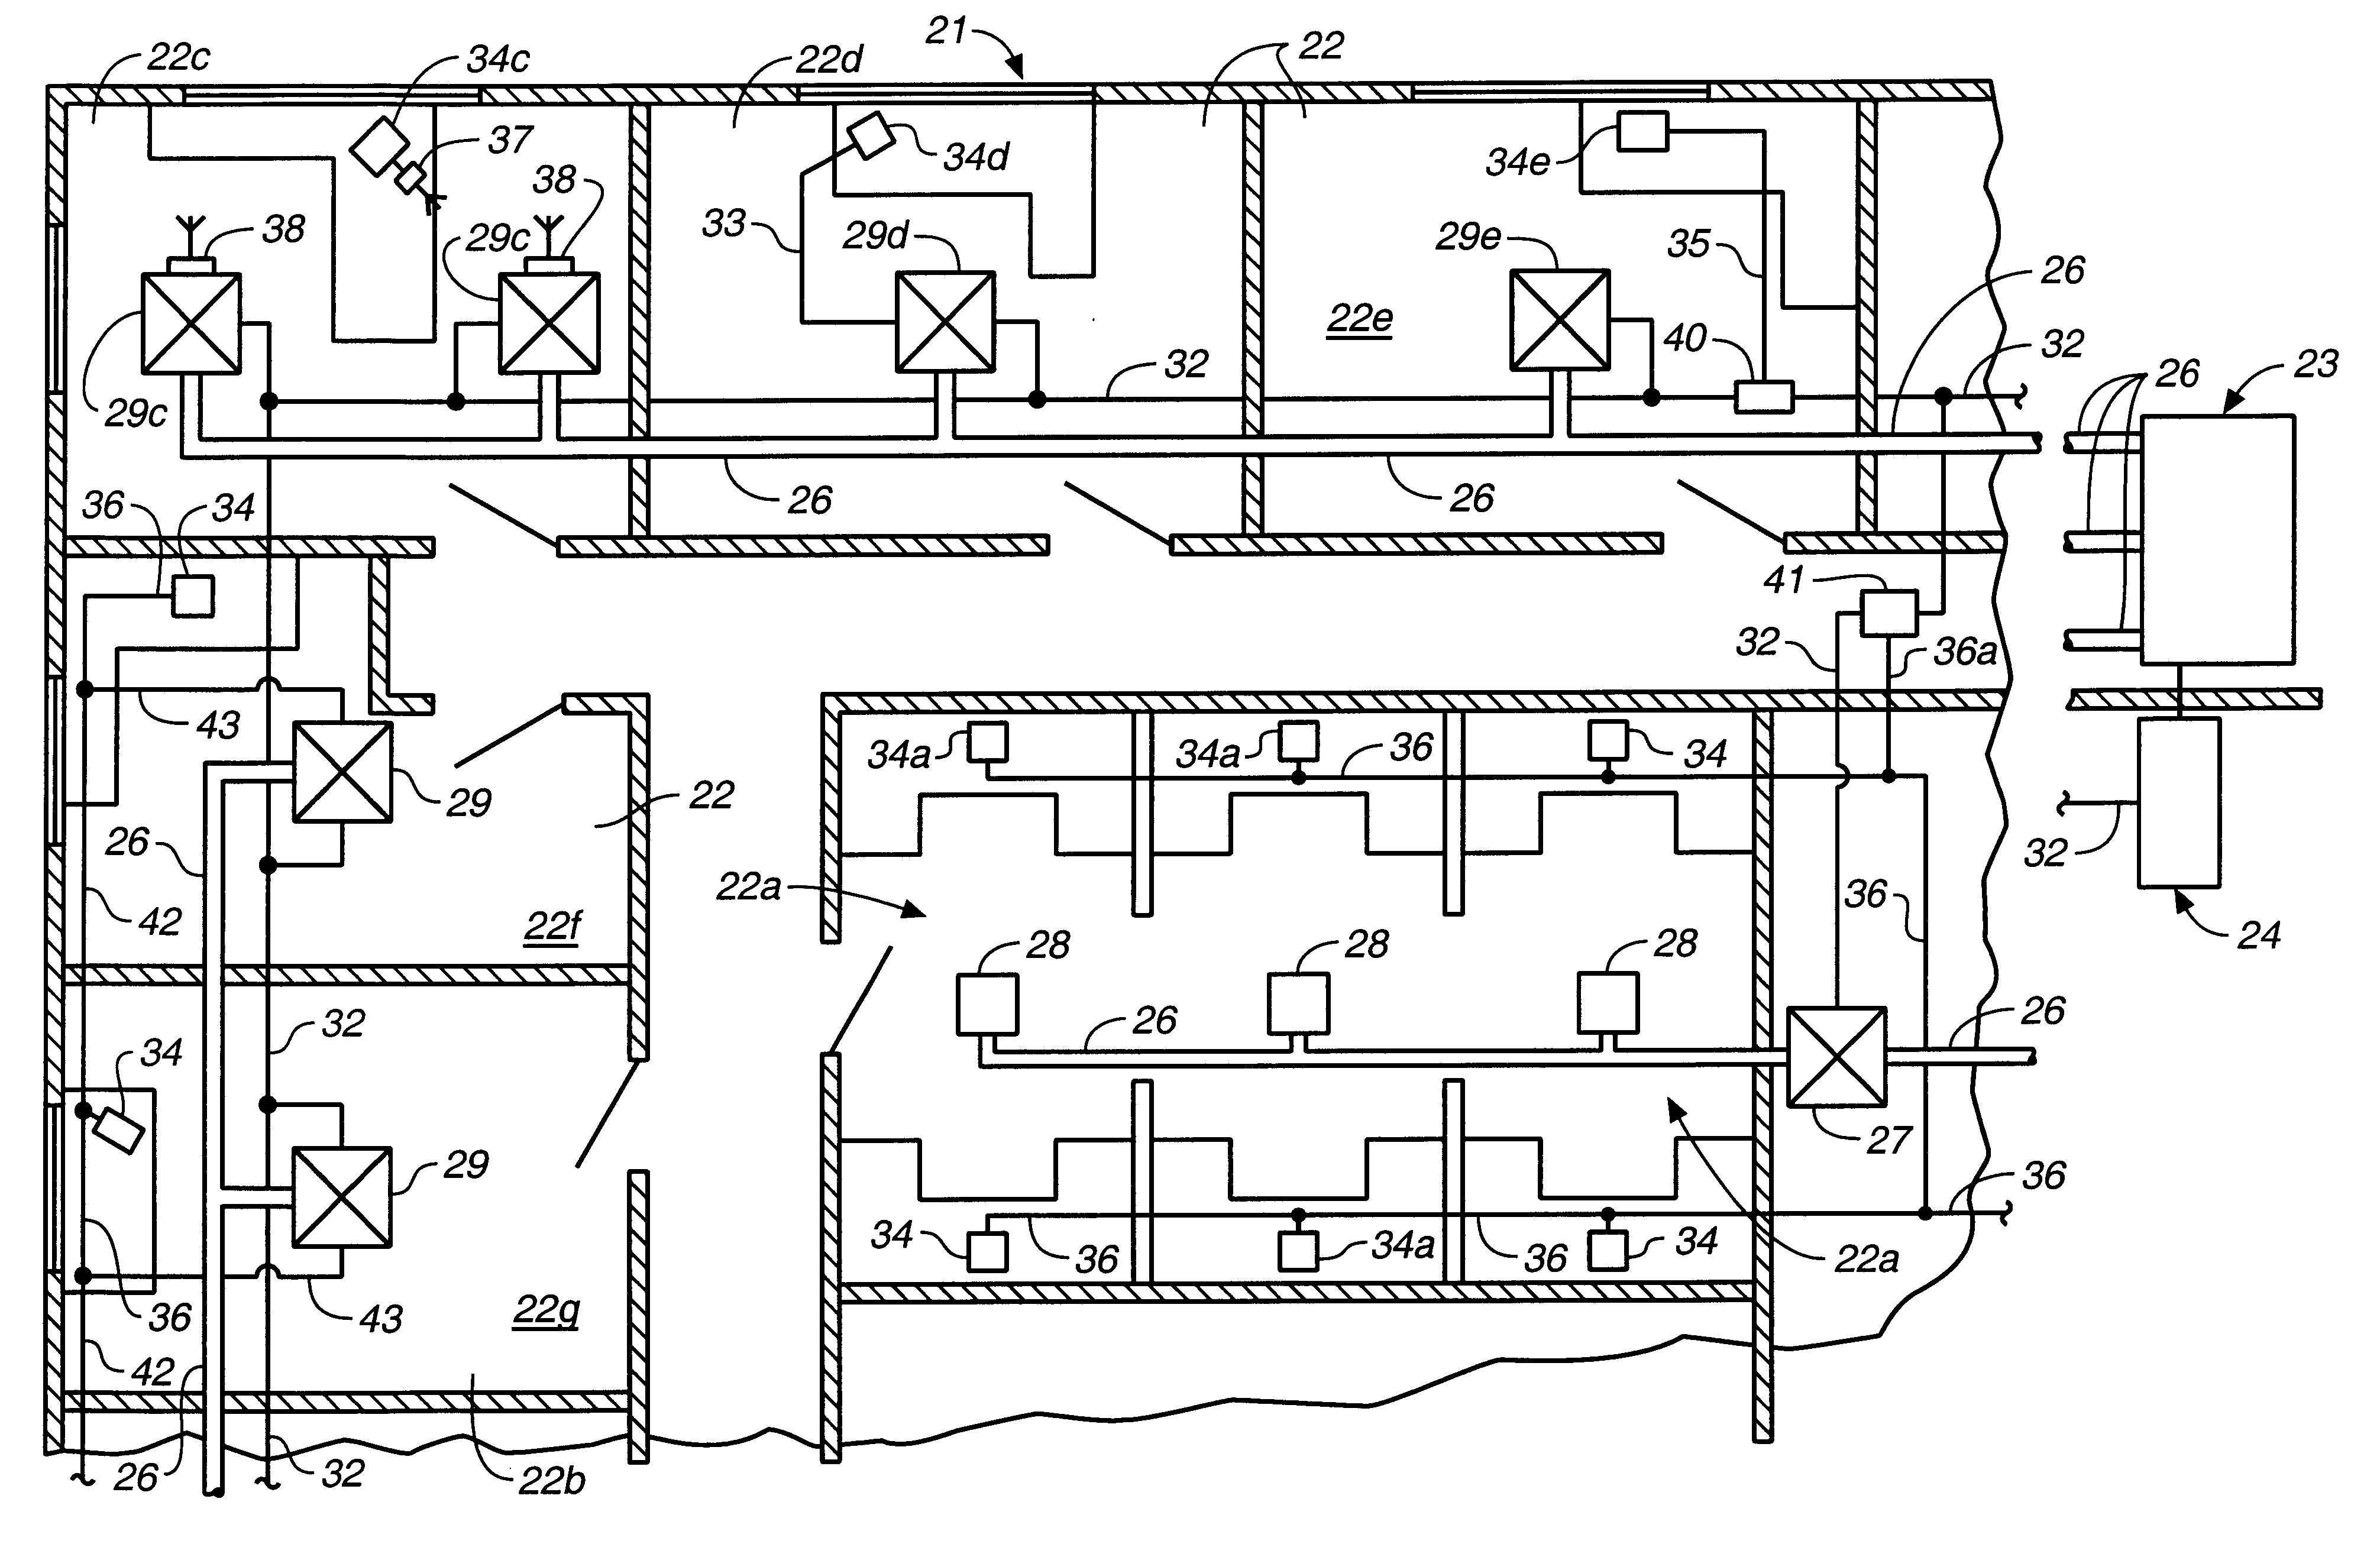 Floor plan symbols at home and interior design ideas best patent drawing buycottarizona Gallery